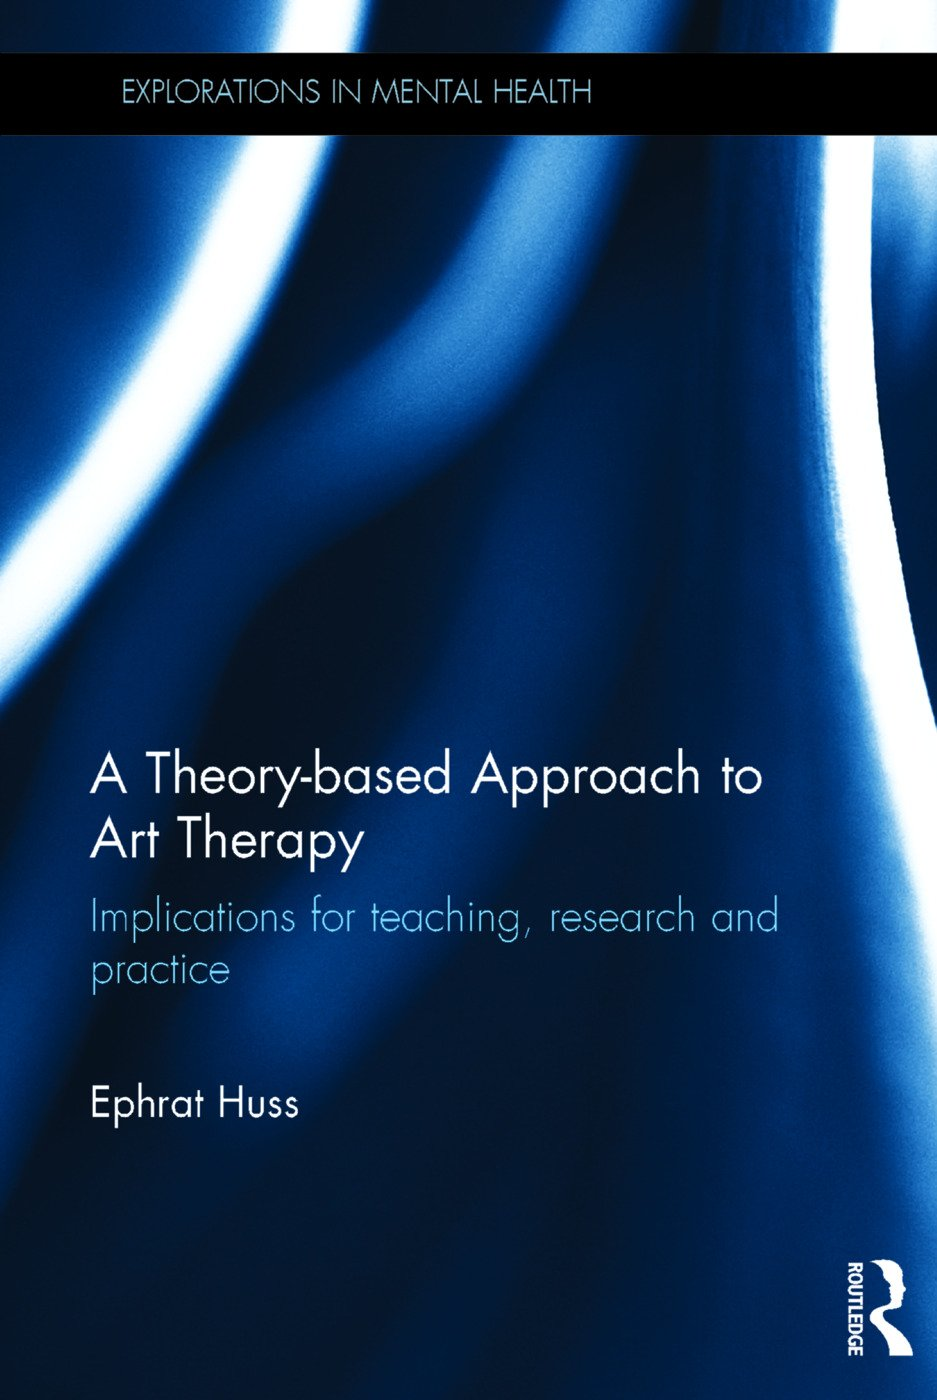 A Theory-based Approach to Art Therapy: Implications for teaching, research and practice book cover